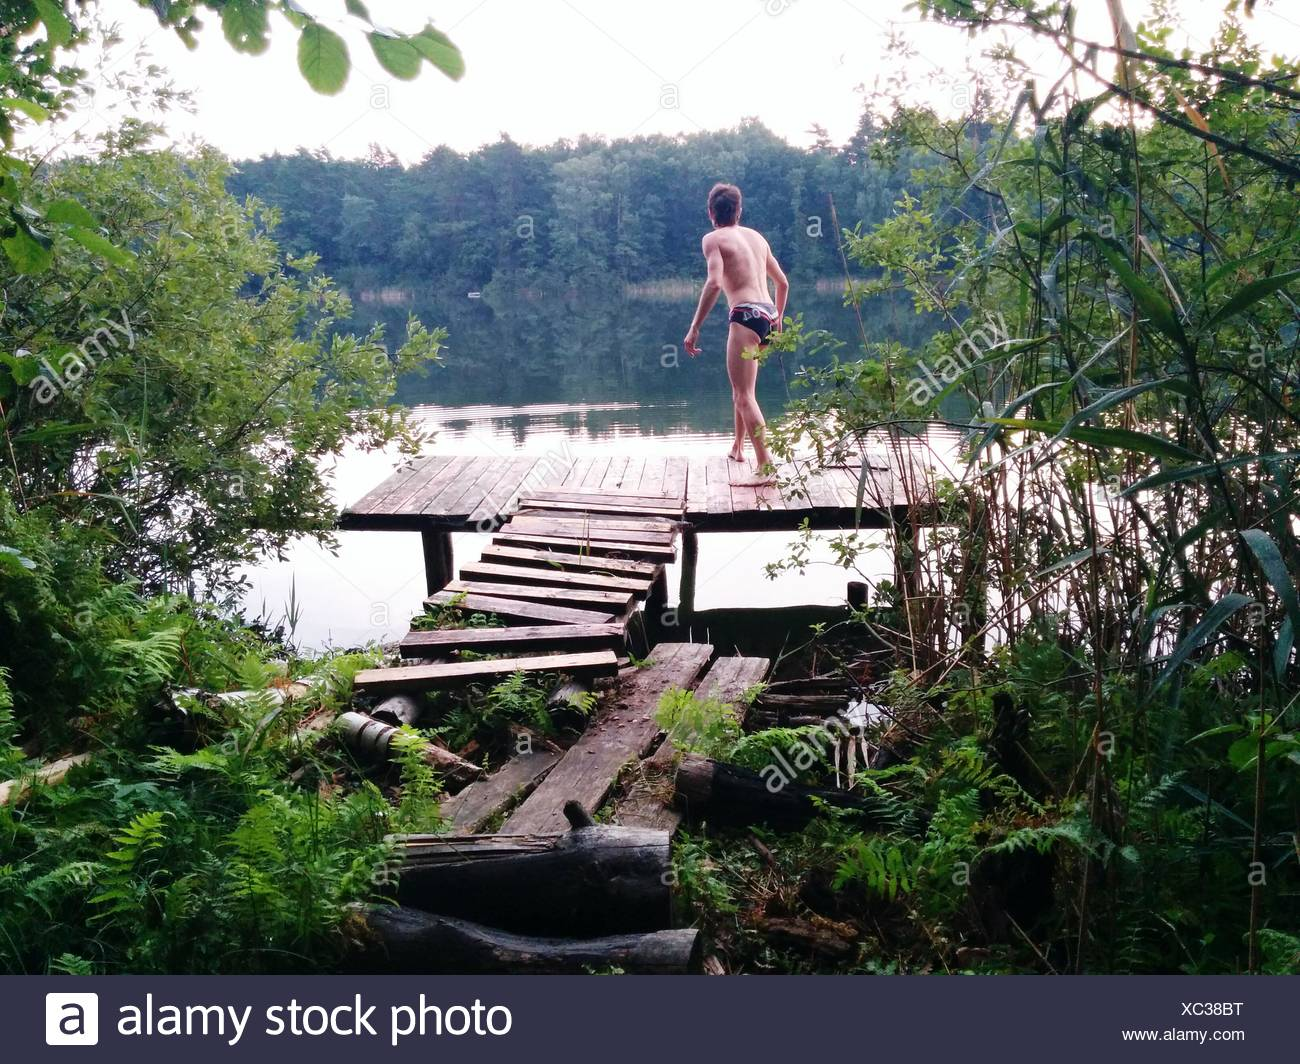 Rear View Of Man Standing At Lakeshore - Stock Image